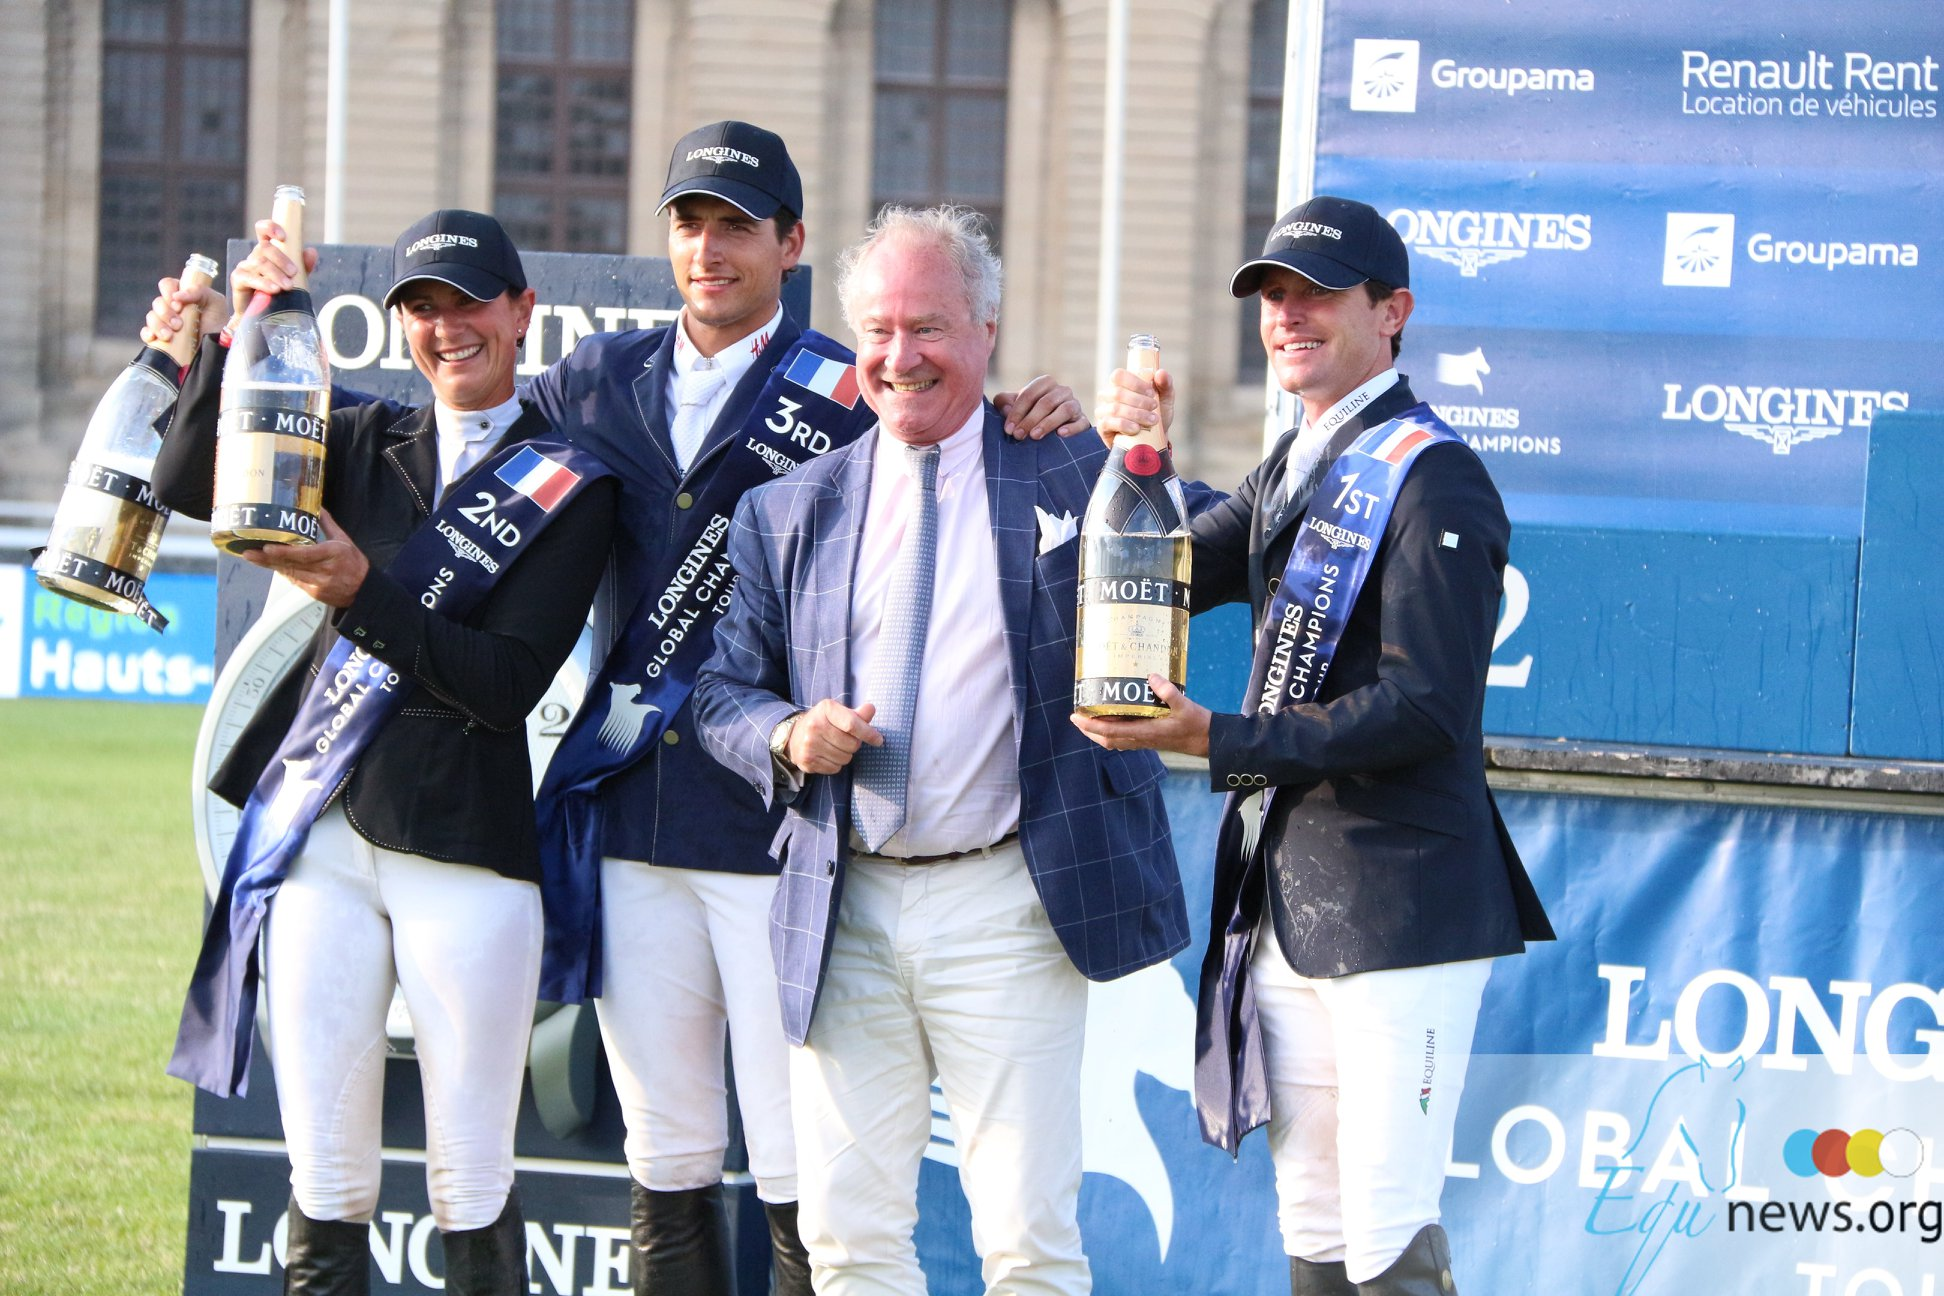 Daring Darragh and Balou Win LGCT Chantilly Showstopper